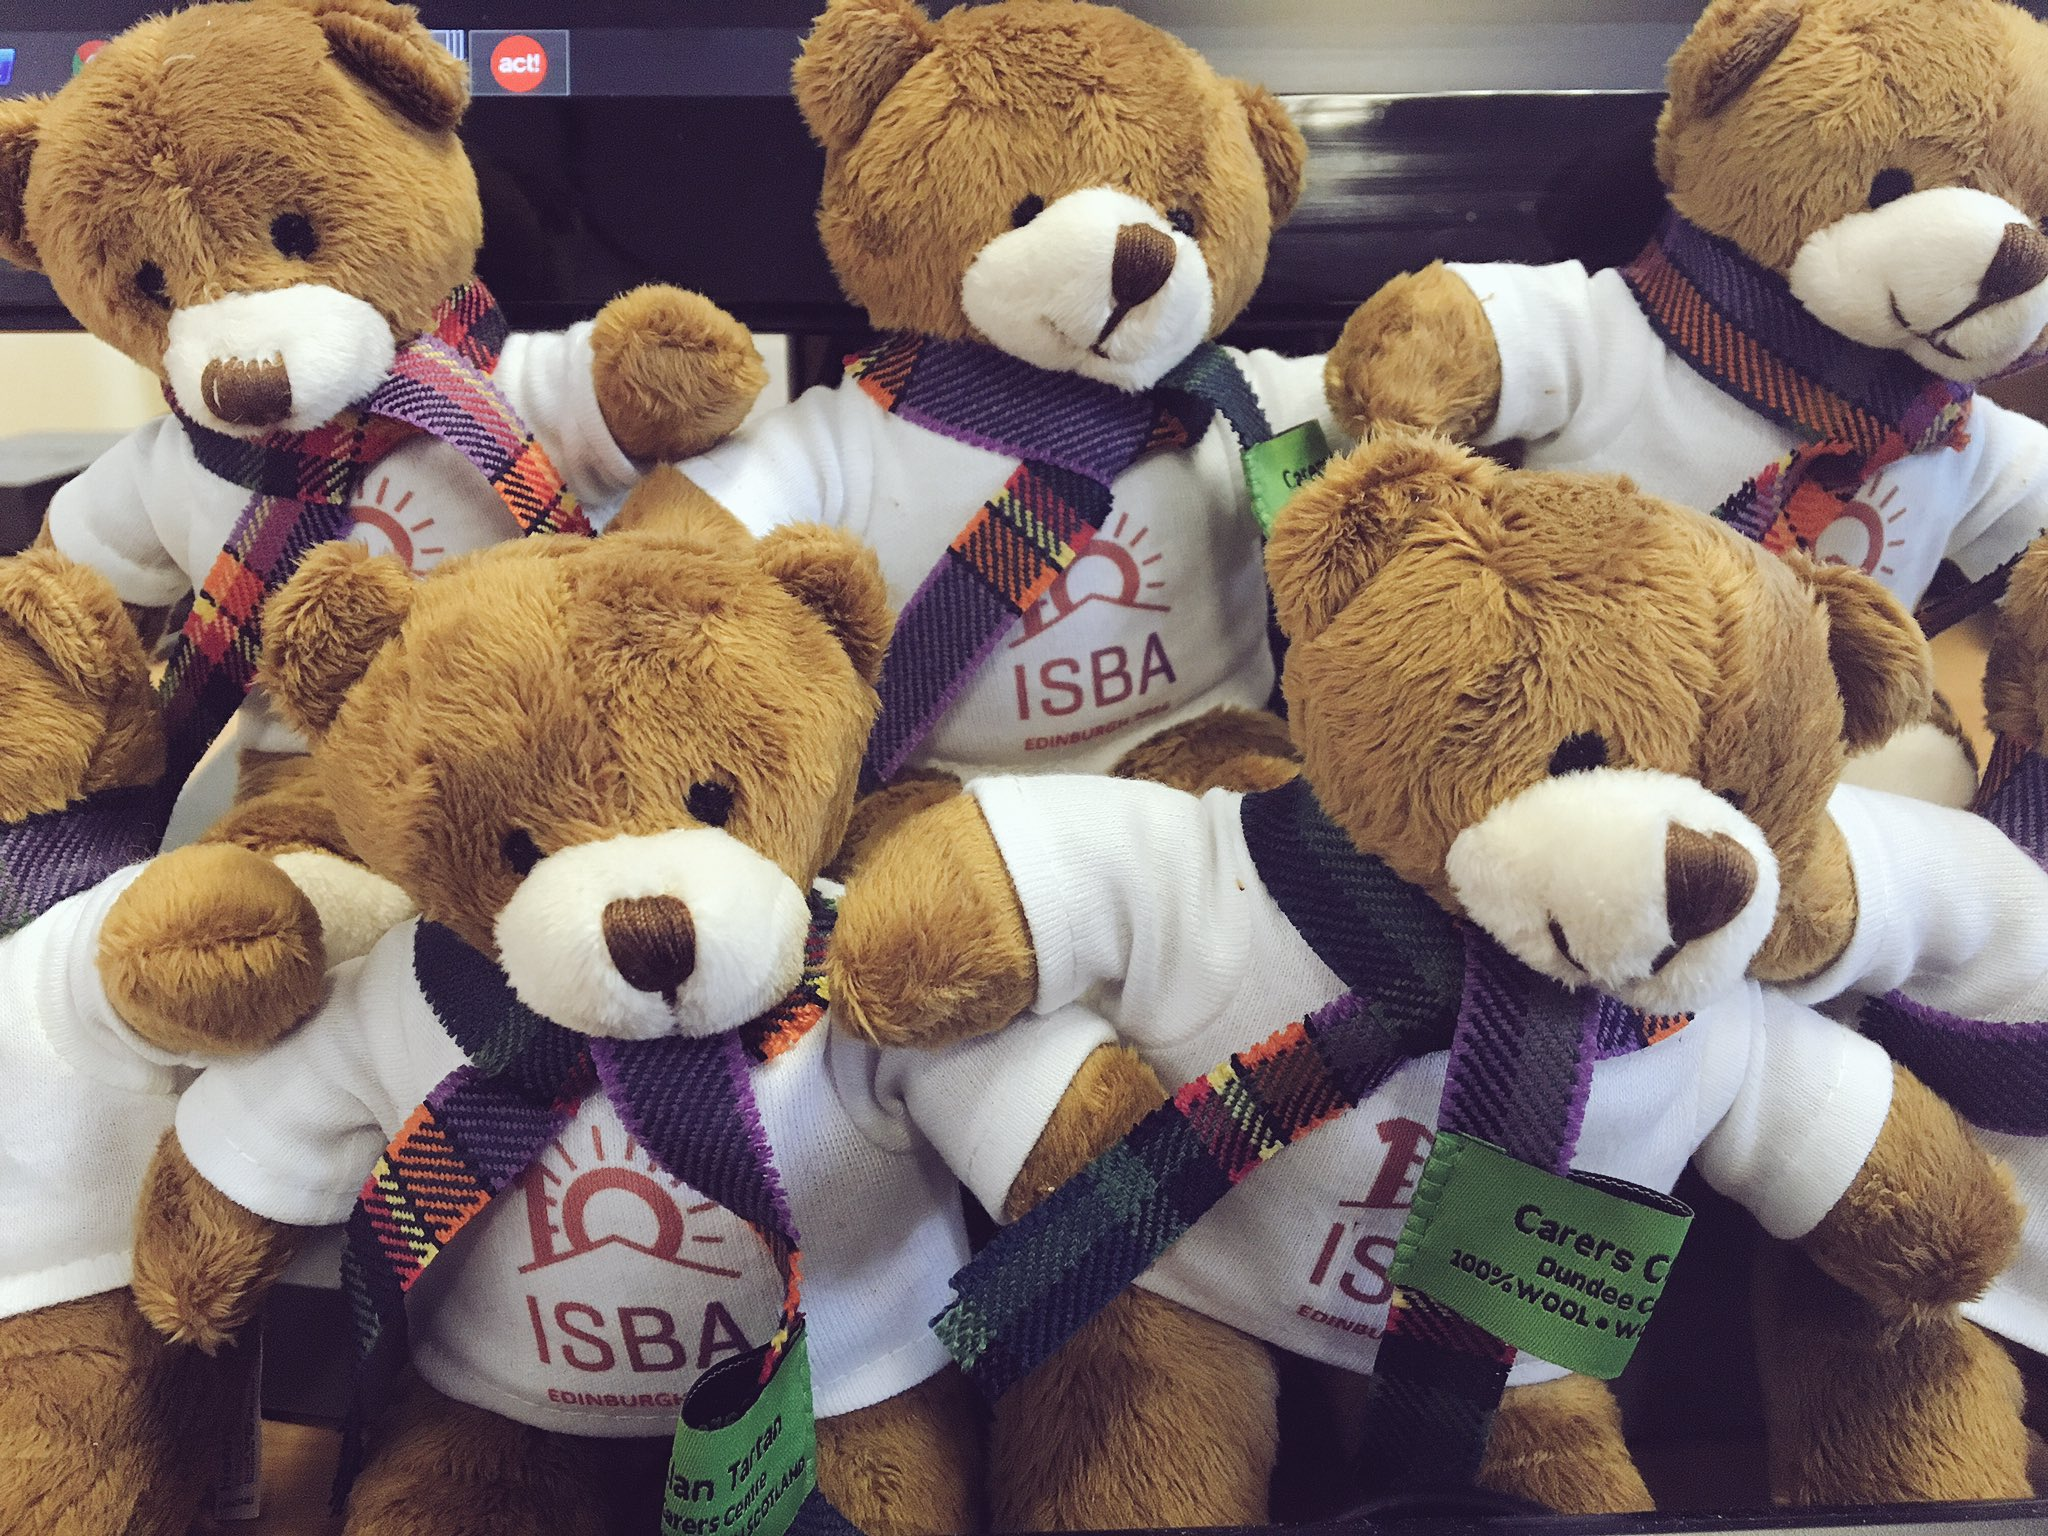 What's the collective noun for @ISBA2016 teds? A mob? A cuddle? A conference?! #isba10 https://t.co/7glVuOLbBv